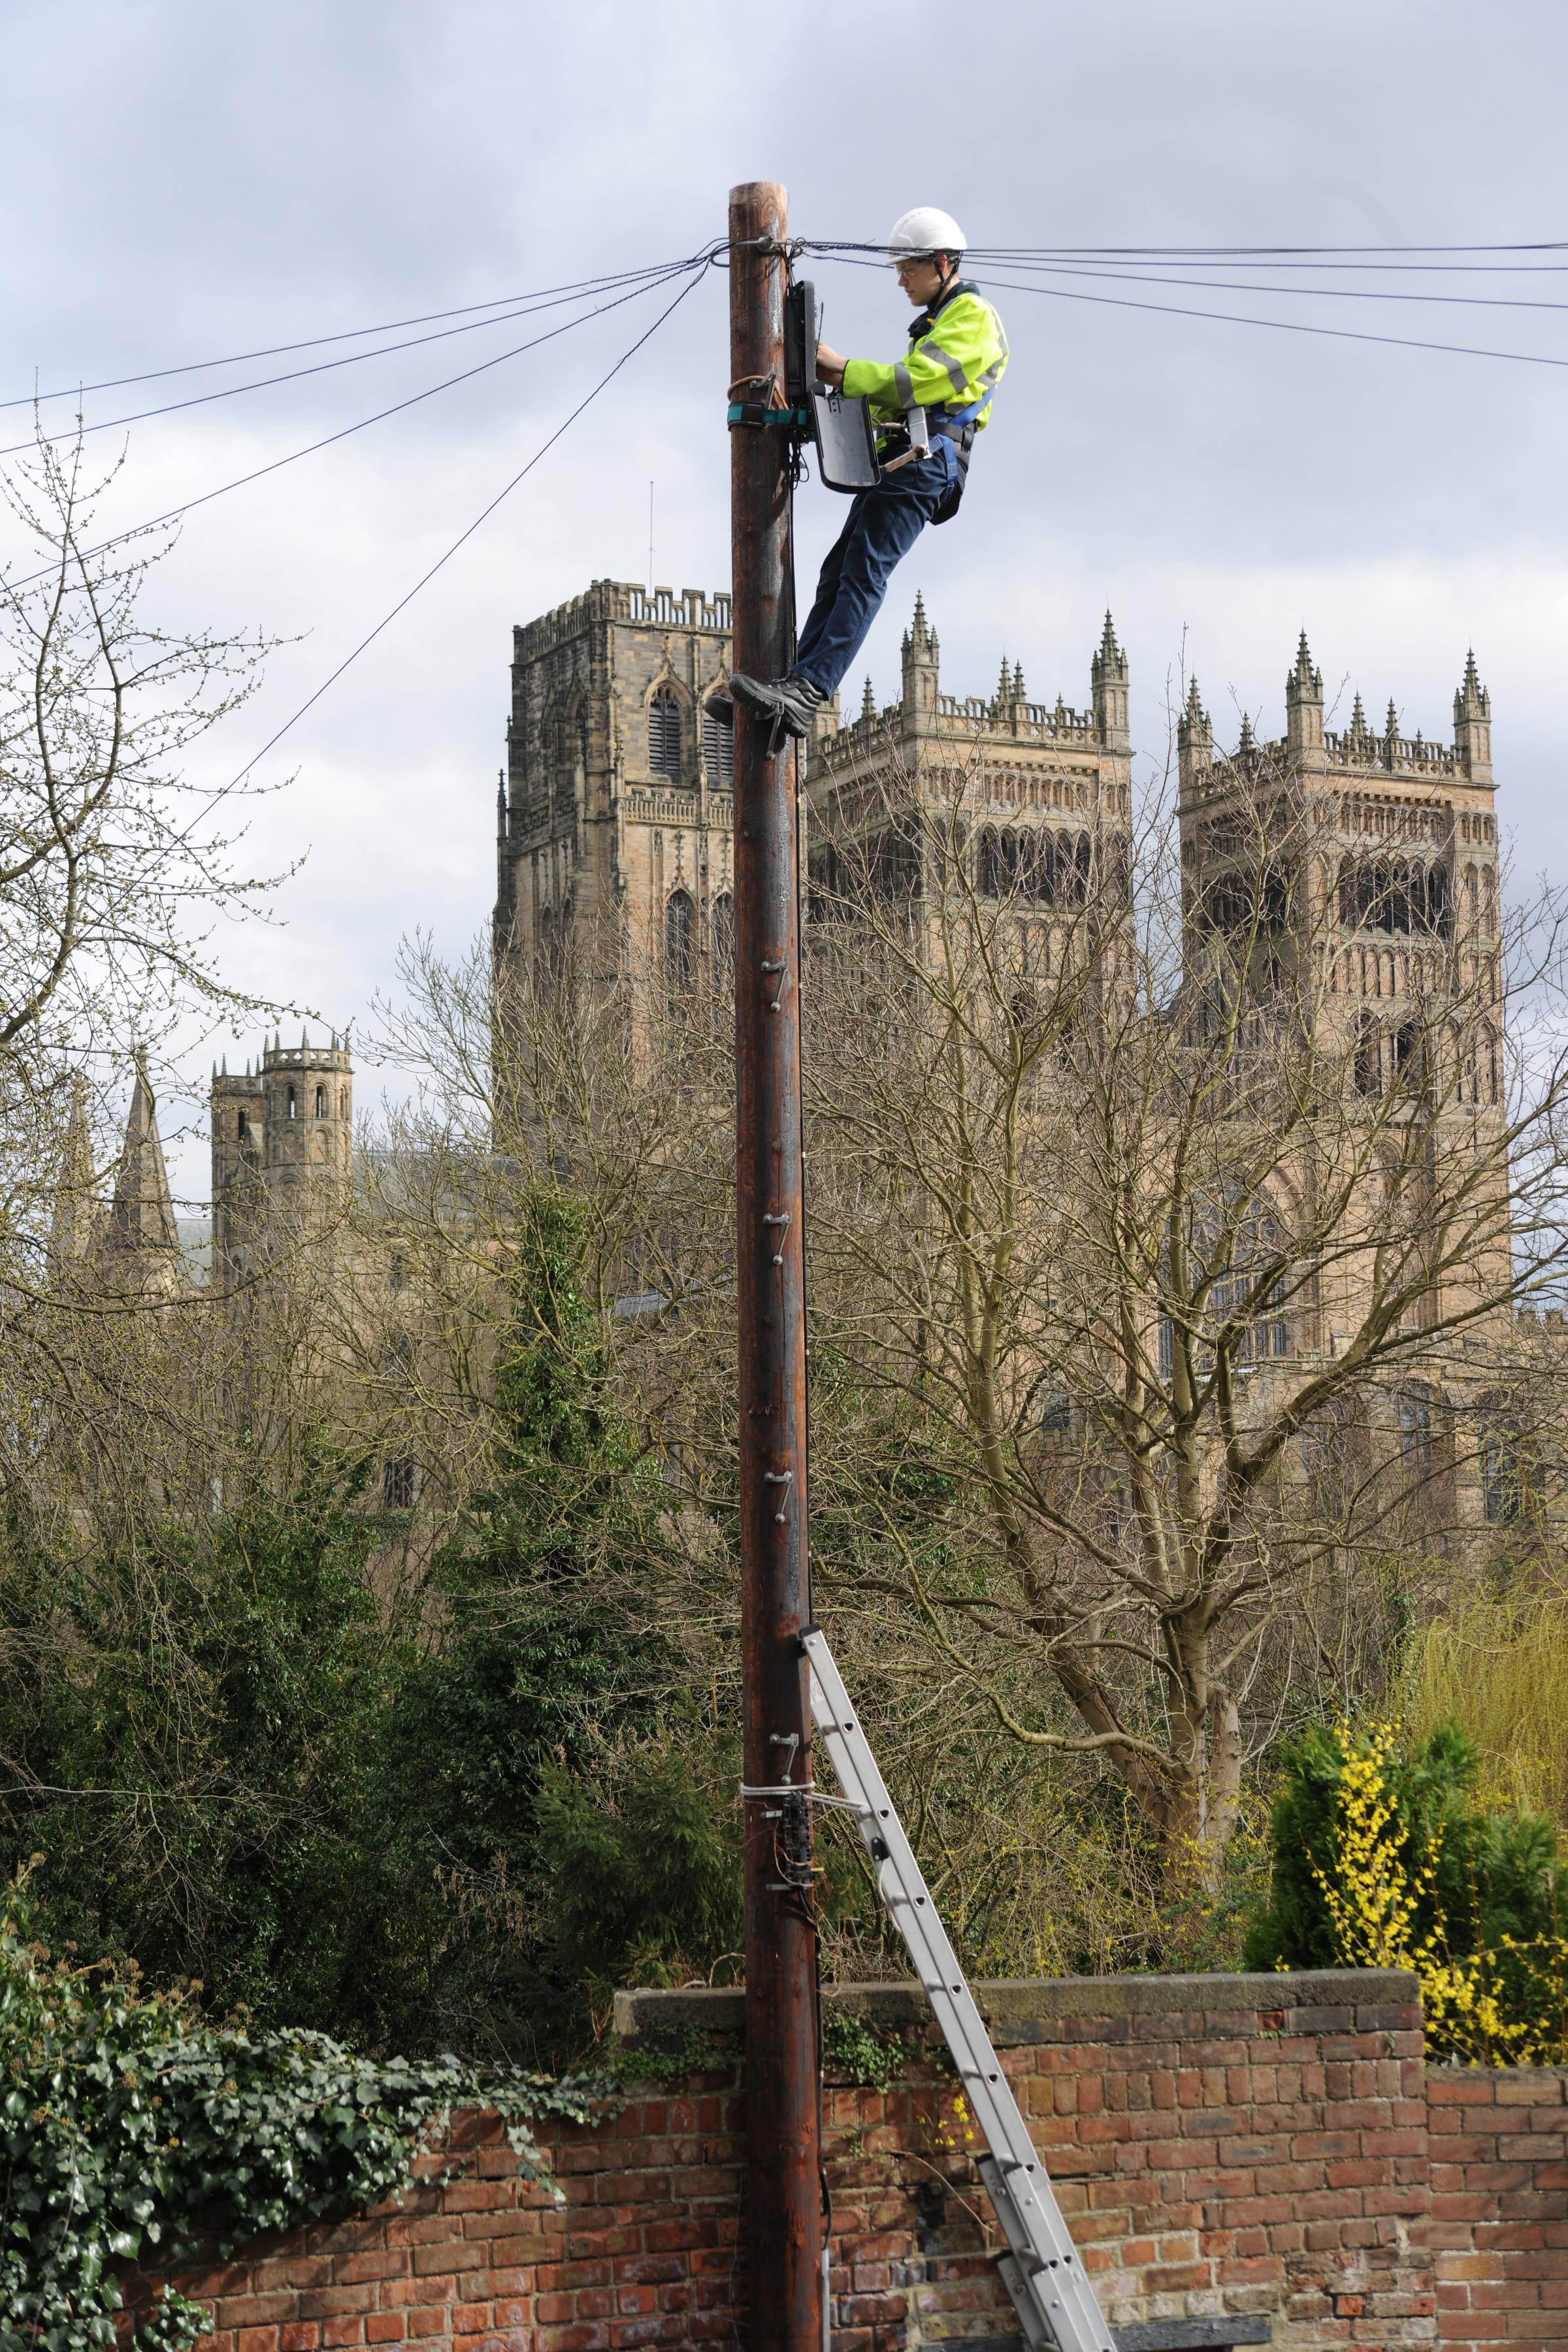 Company Says 45 Posts Will Be Based Across County Durham And